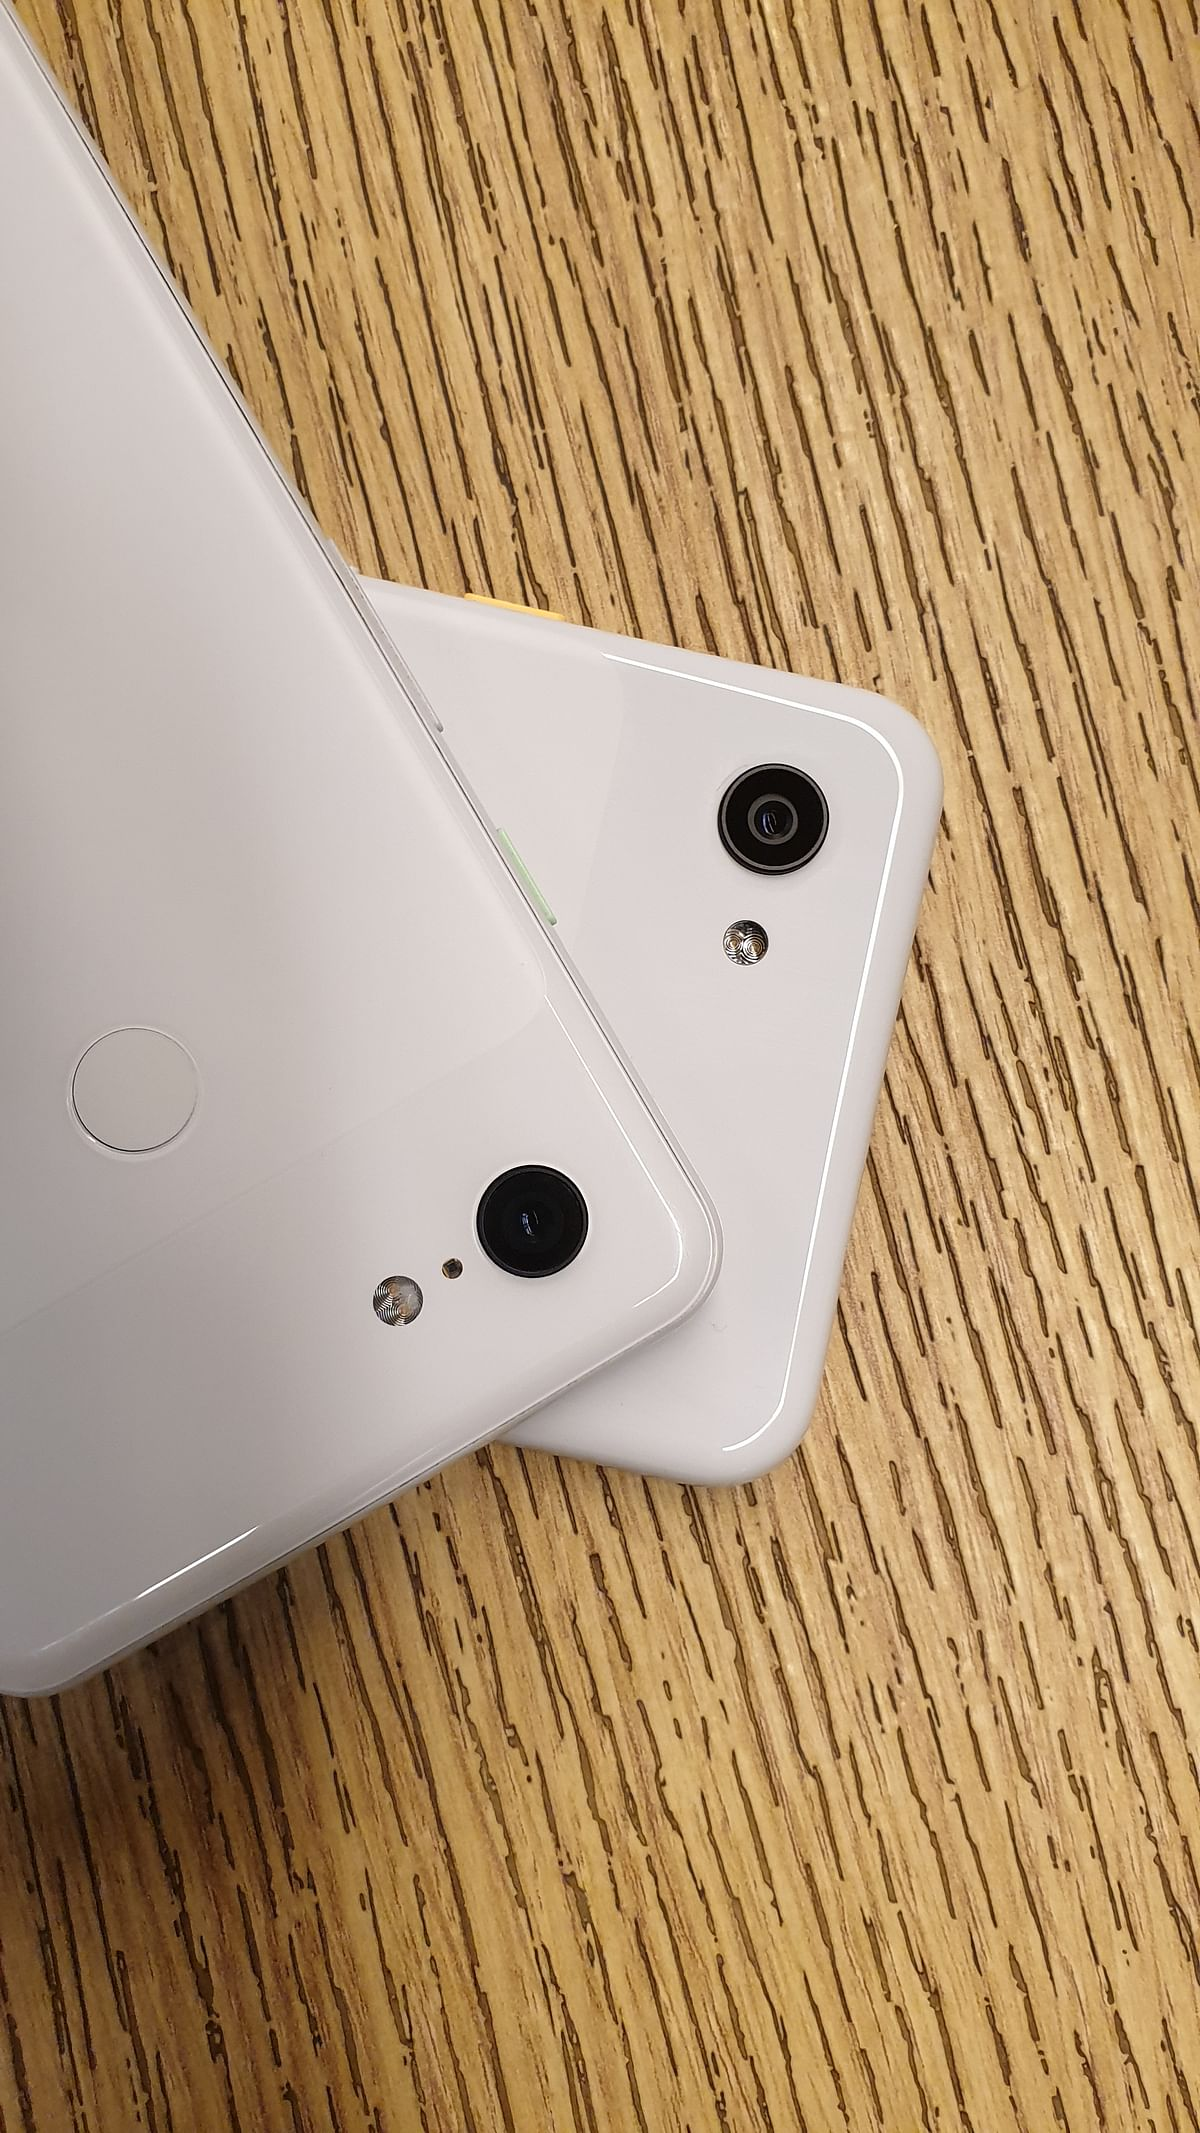 Pixel 3a XL(bottom) and Pixel 3 XL (top)